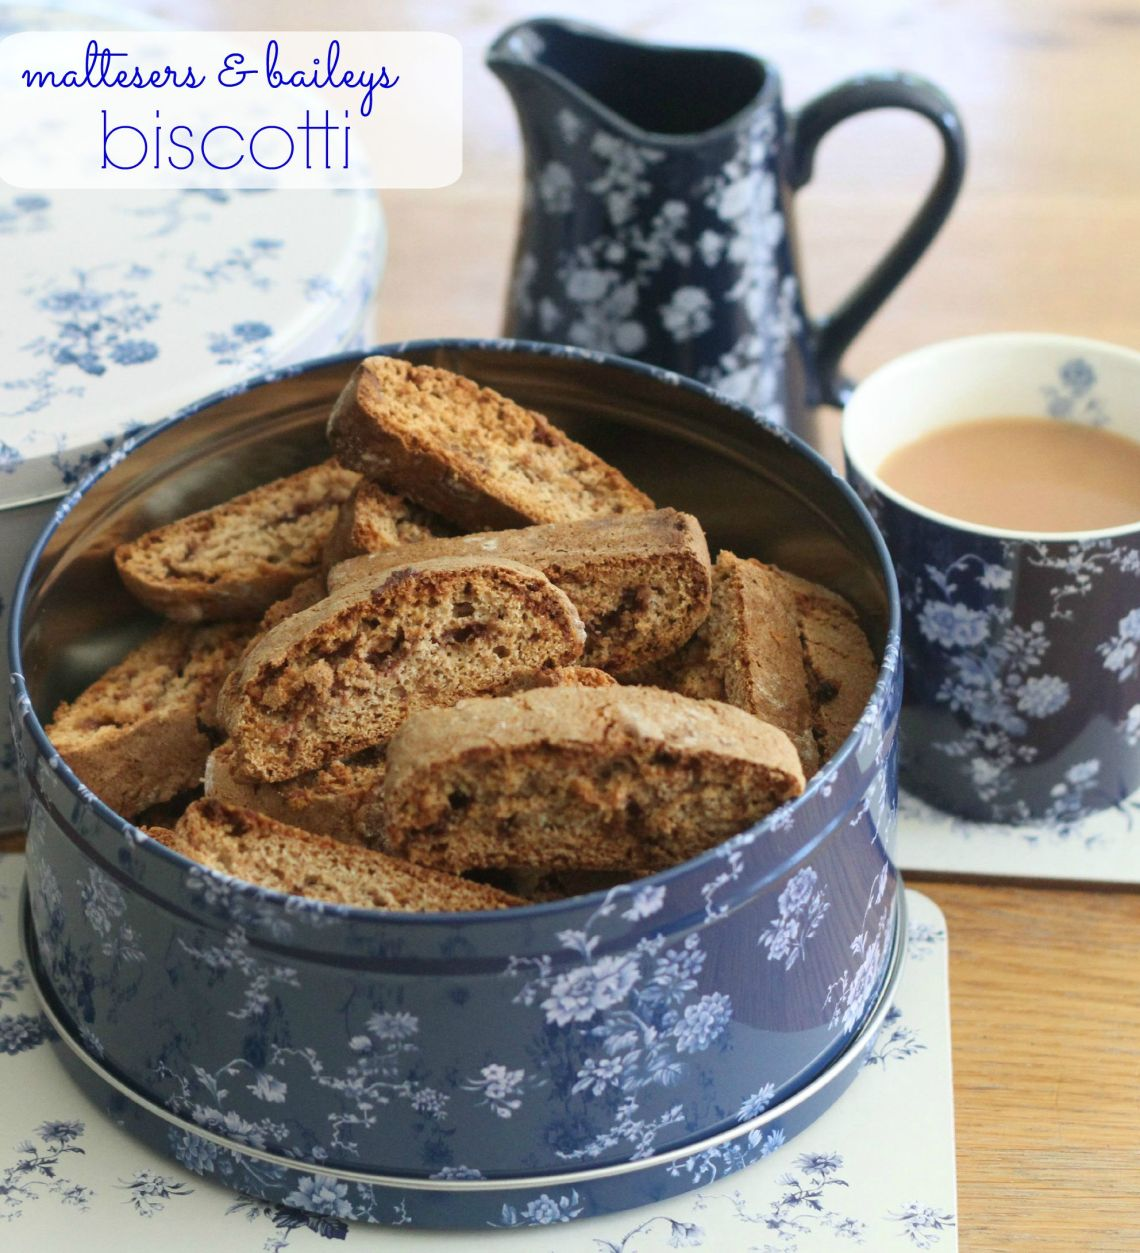 maltesers and baileys biscotti